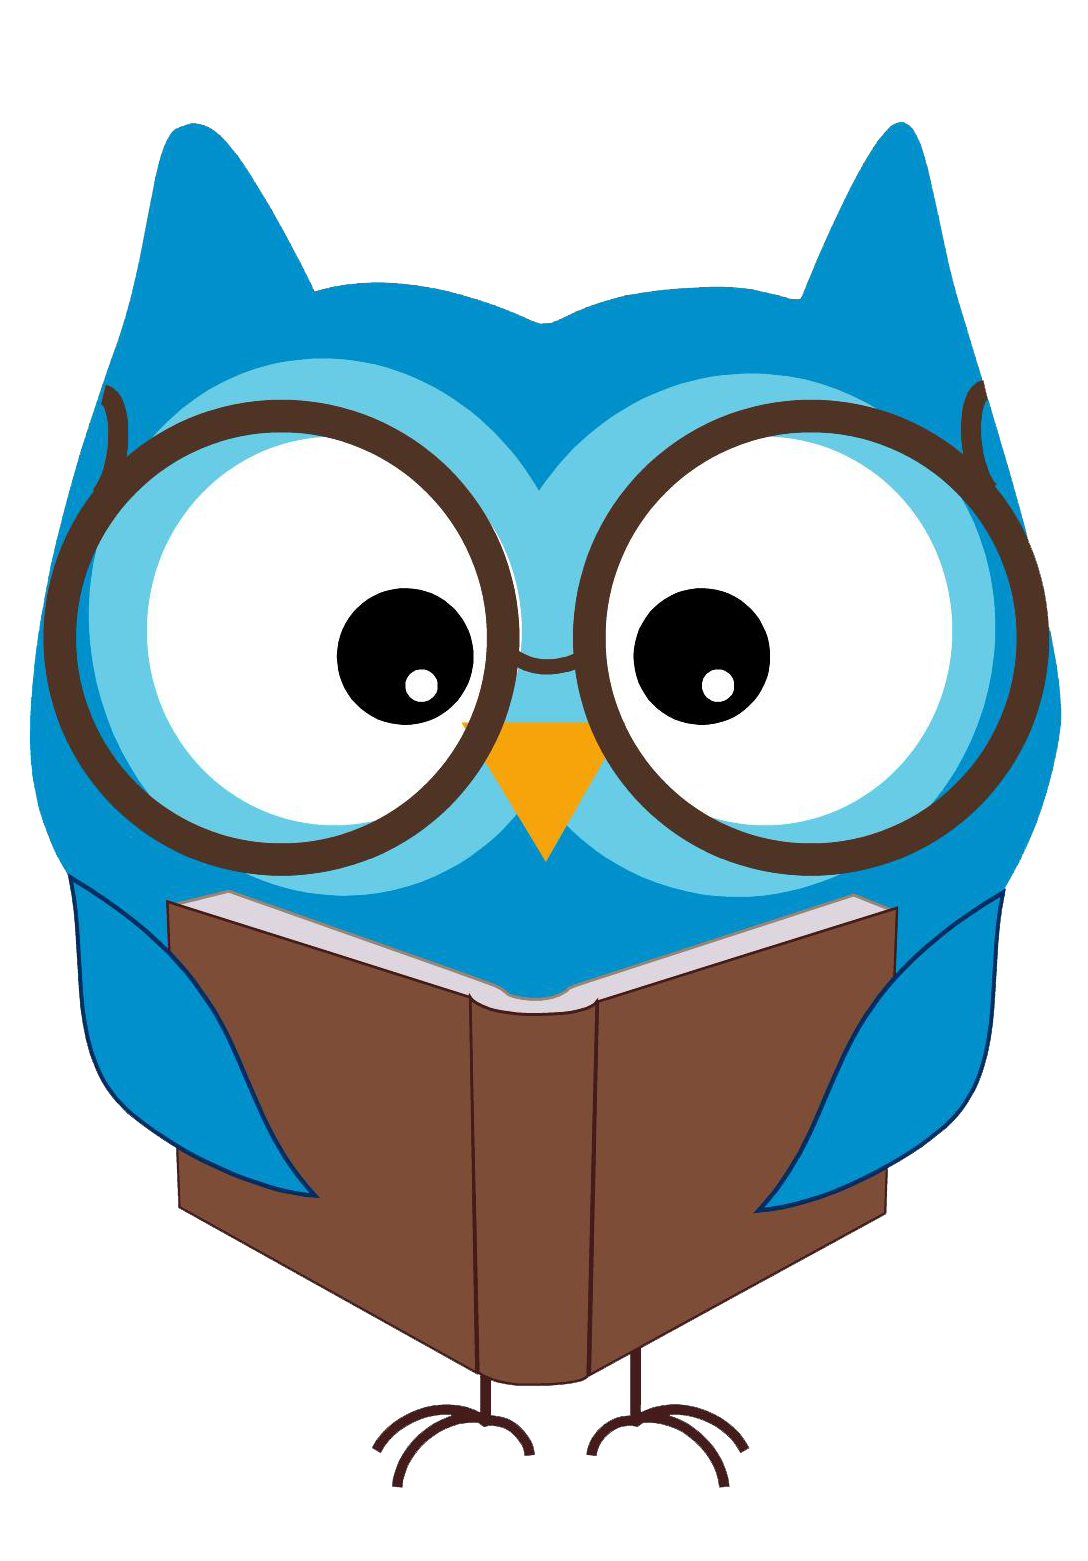 reading owl clip art cliparts co LSchV5 clipart - Trang Chủ